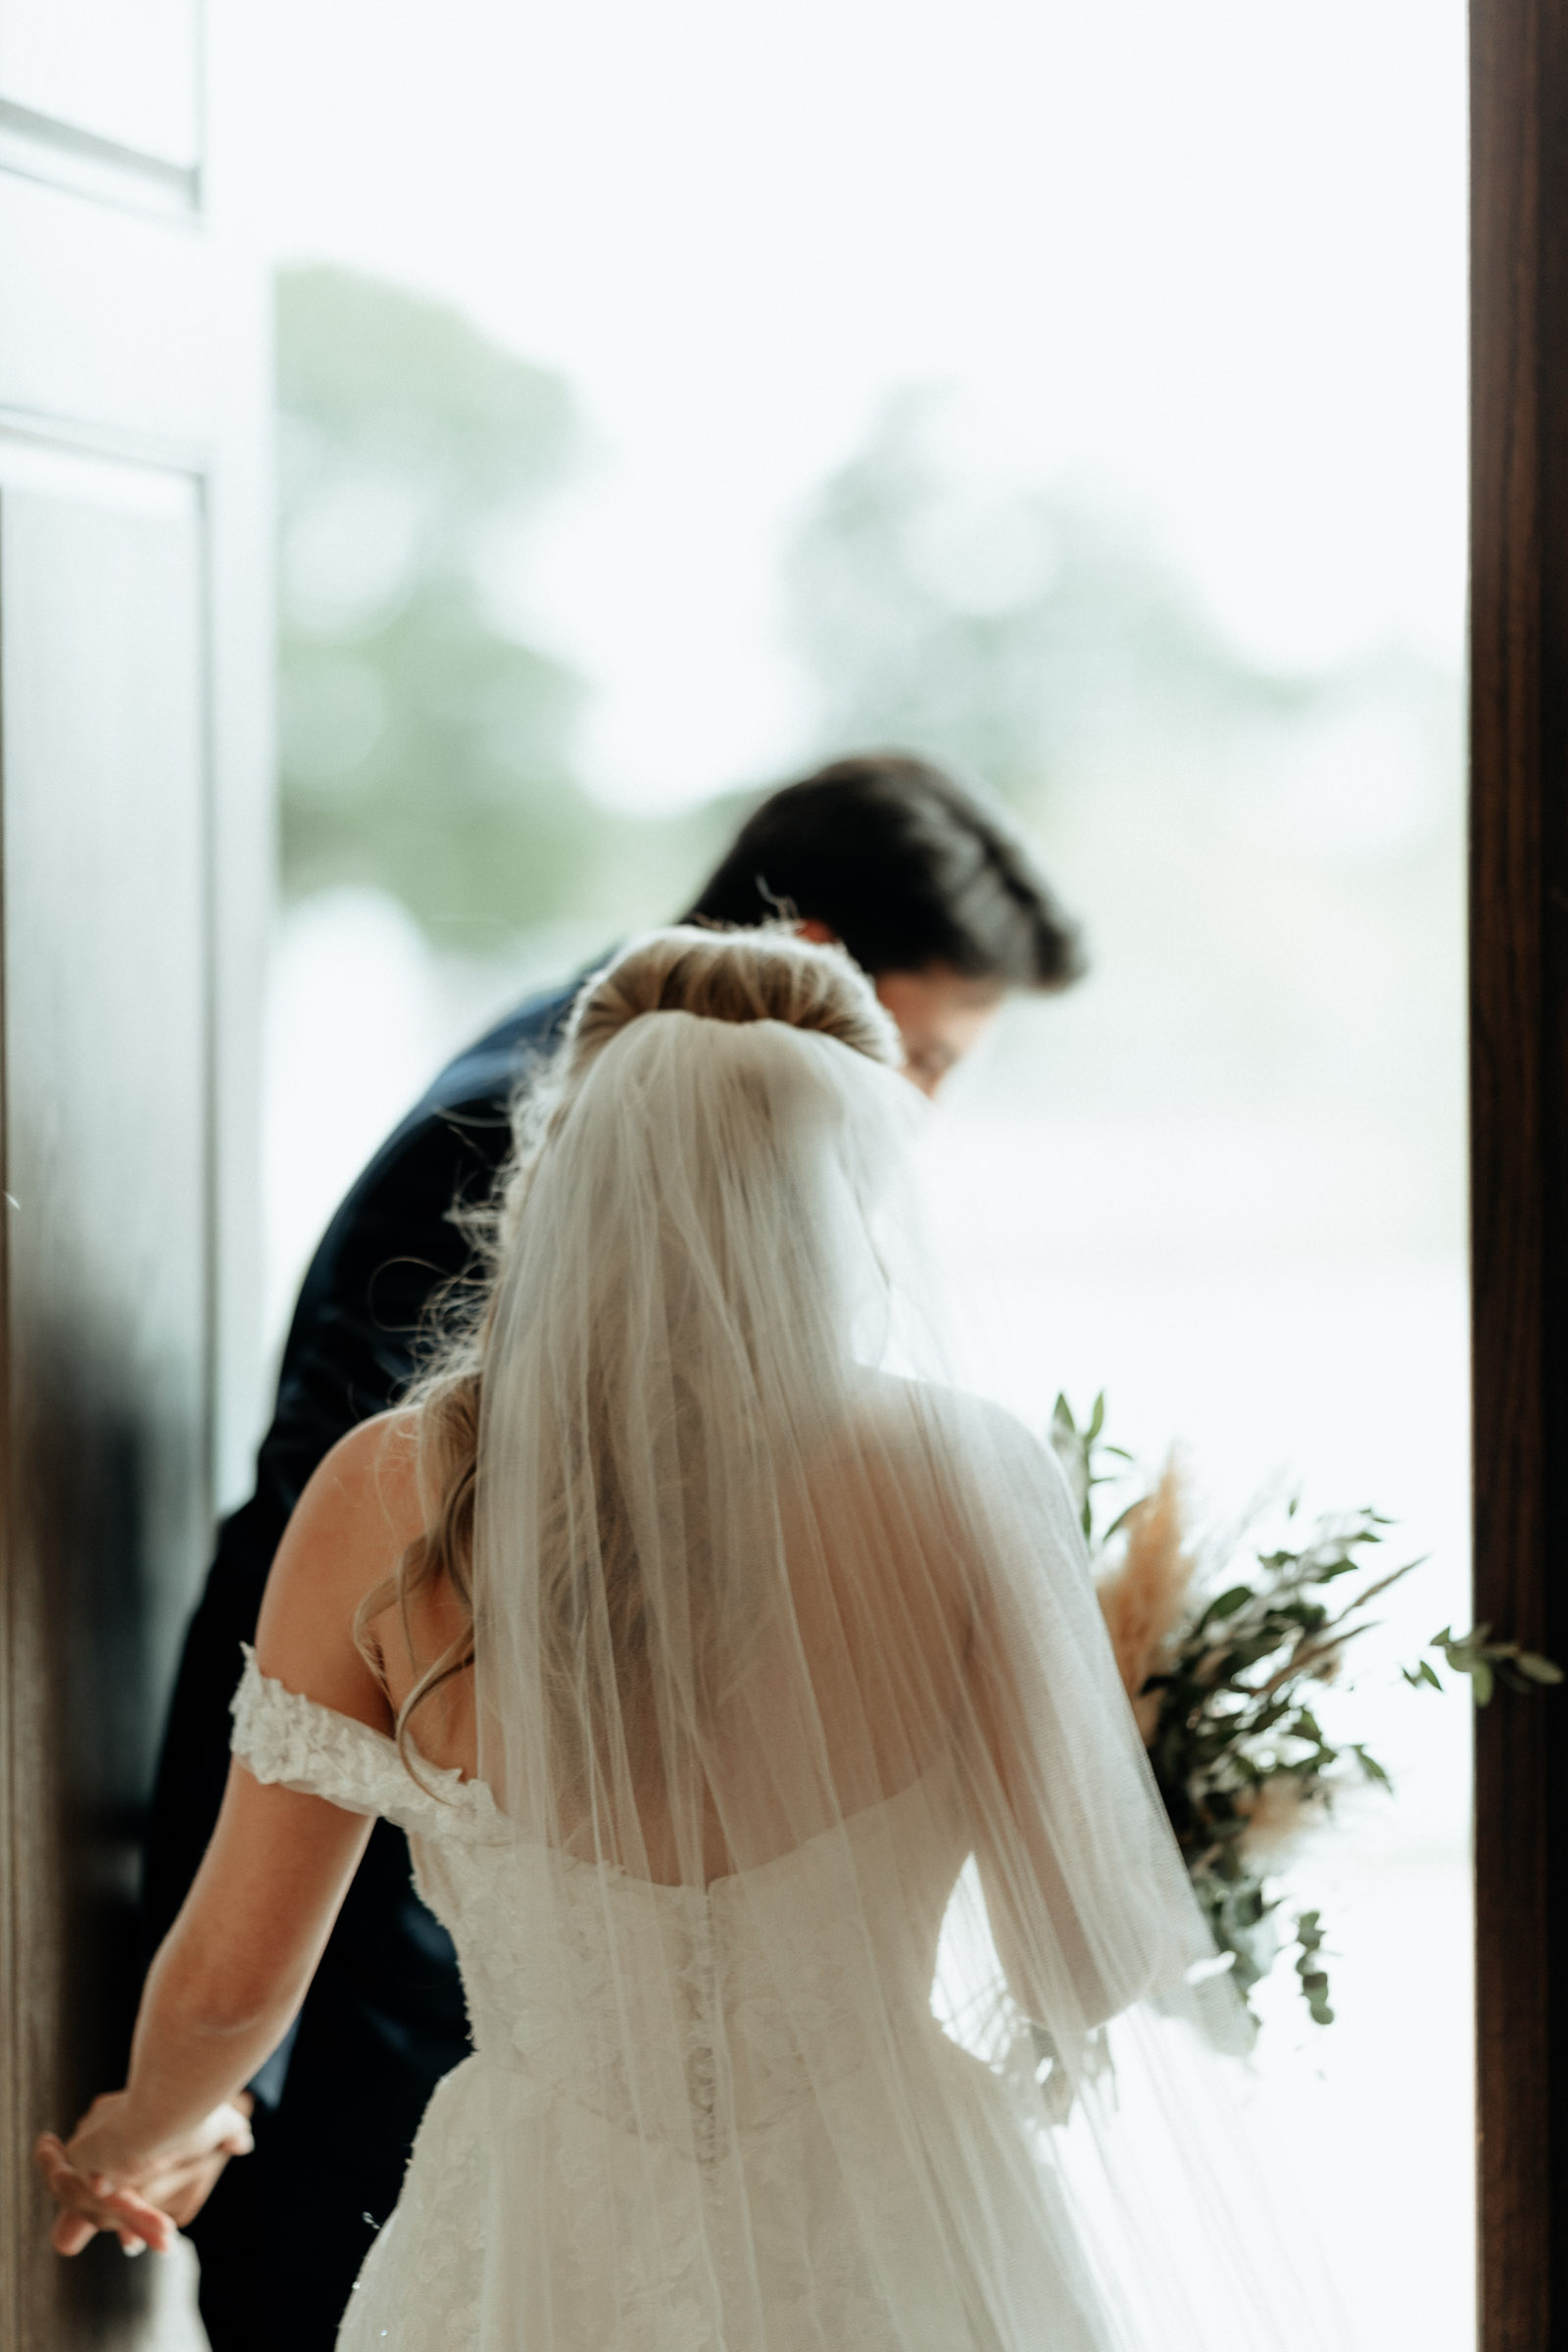 bride and groom leaving wedding chapel after wedding ceremony